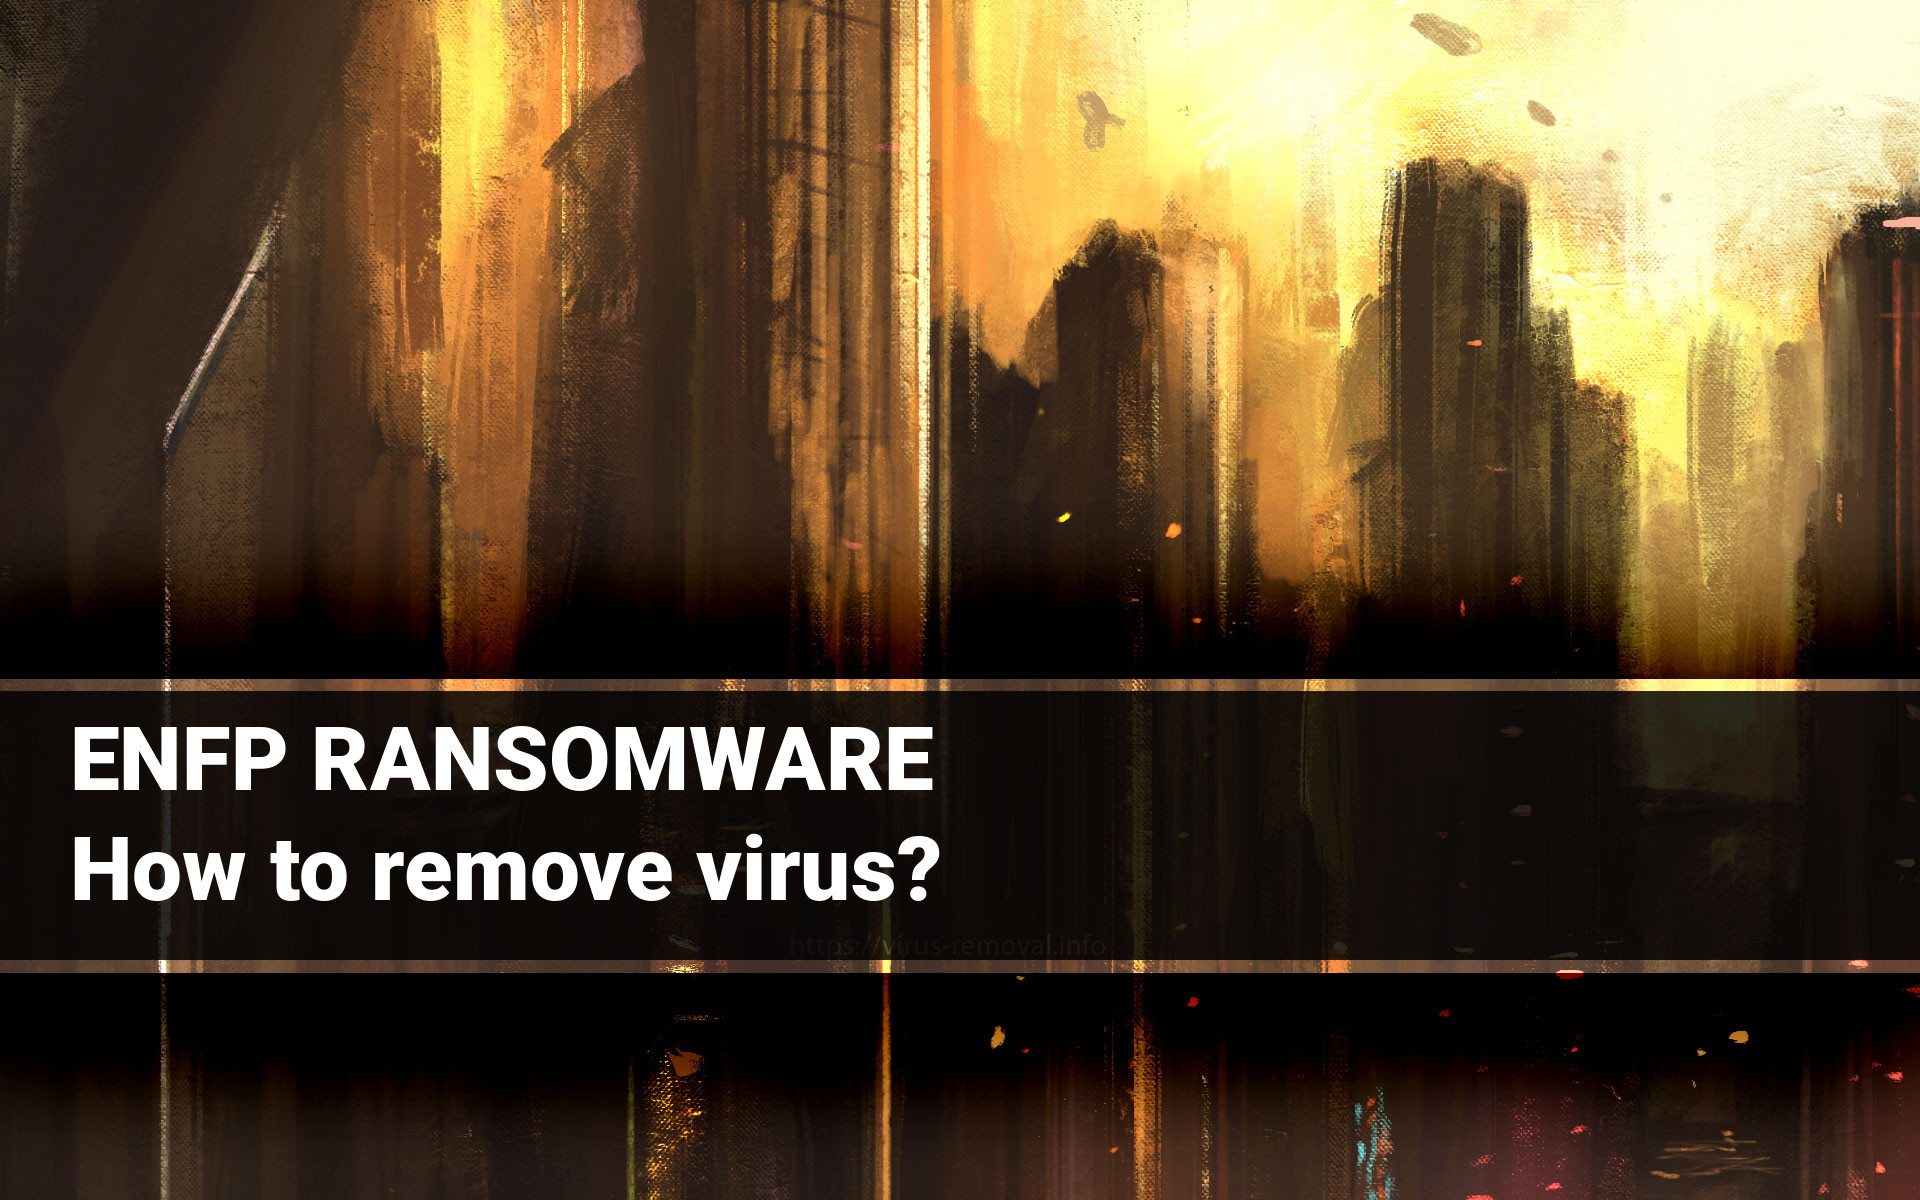 ENFP Ransomware